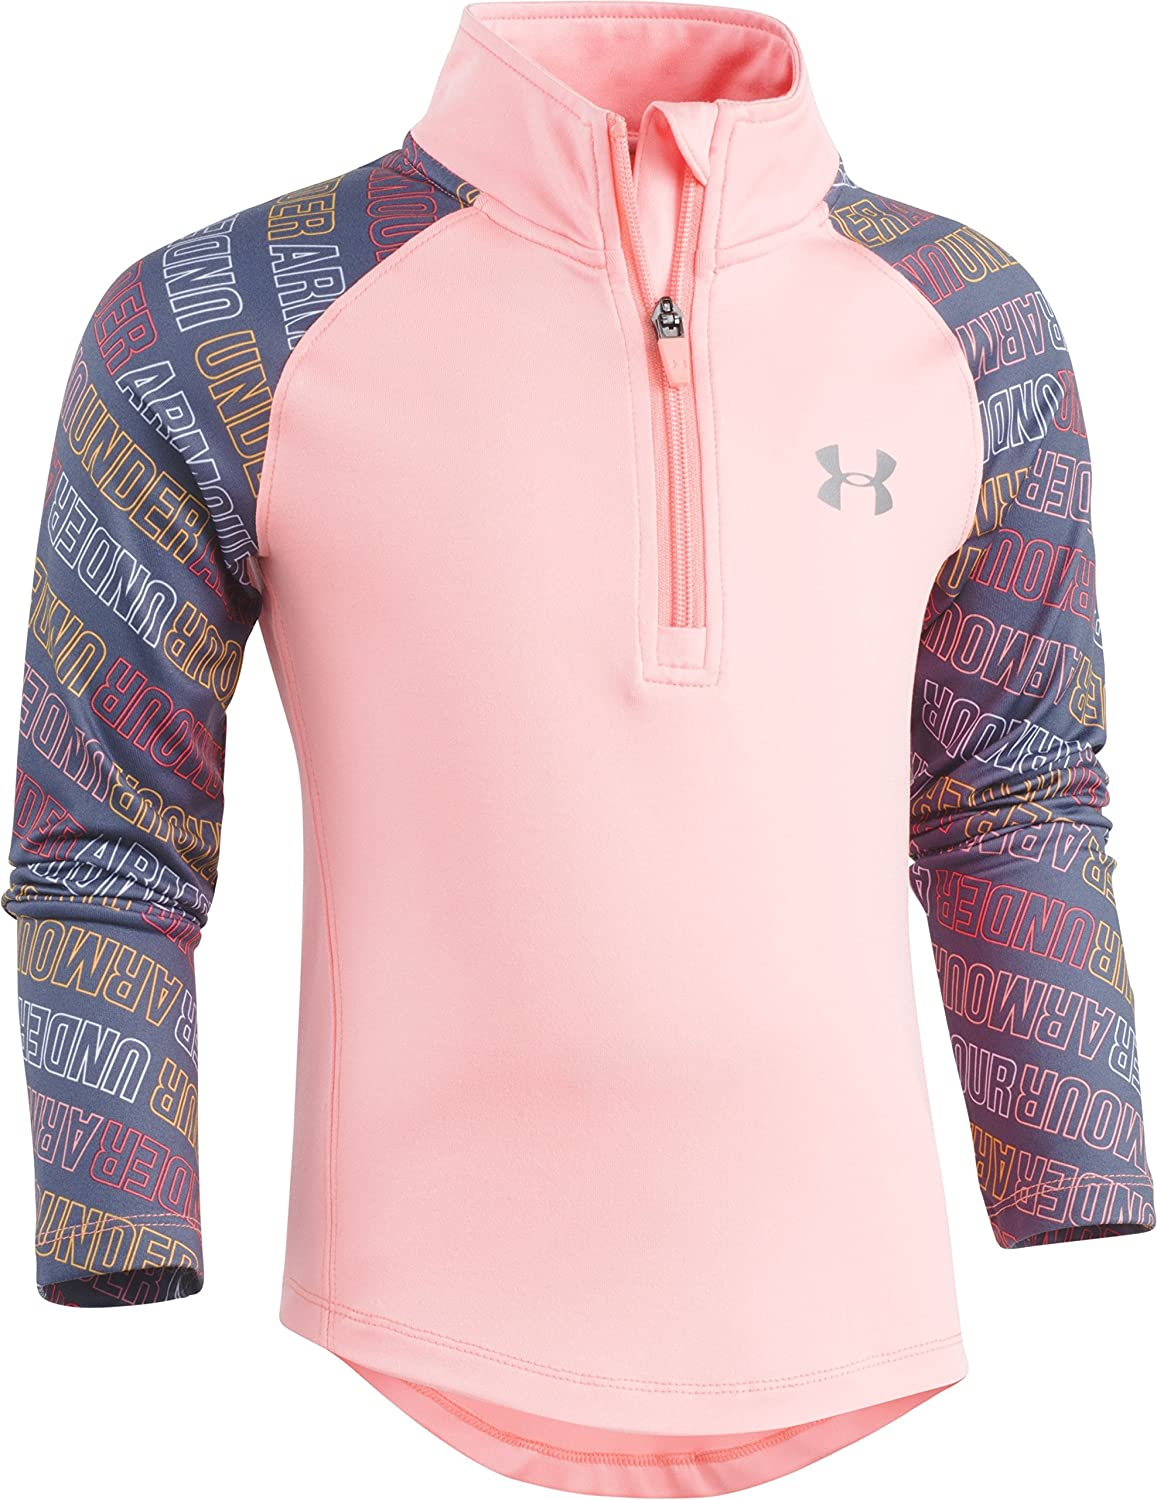 Under Armour Girls' Wordmark 1/4 Zip Track Sweater